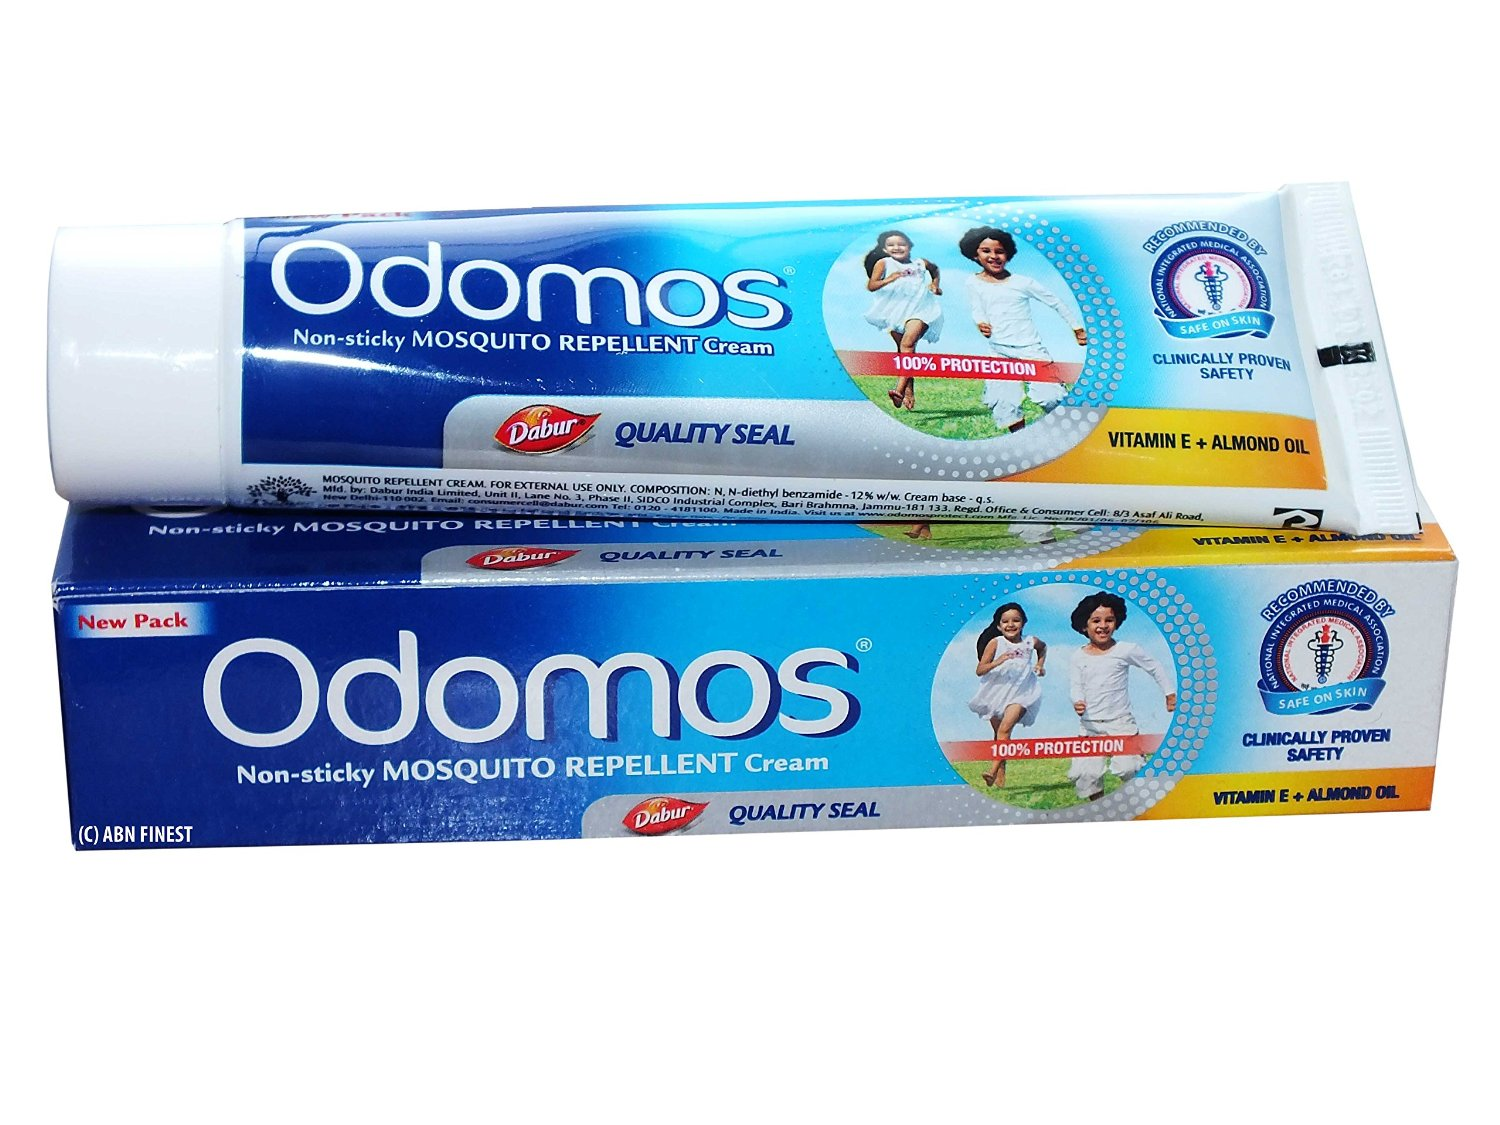 Odomos Repellent Cream